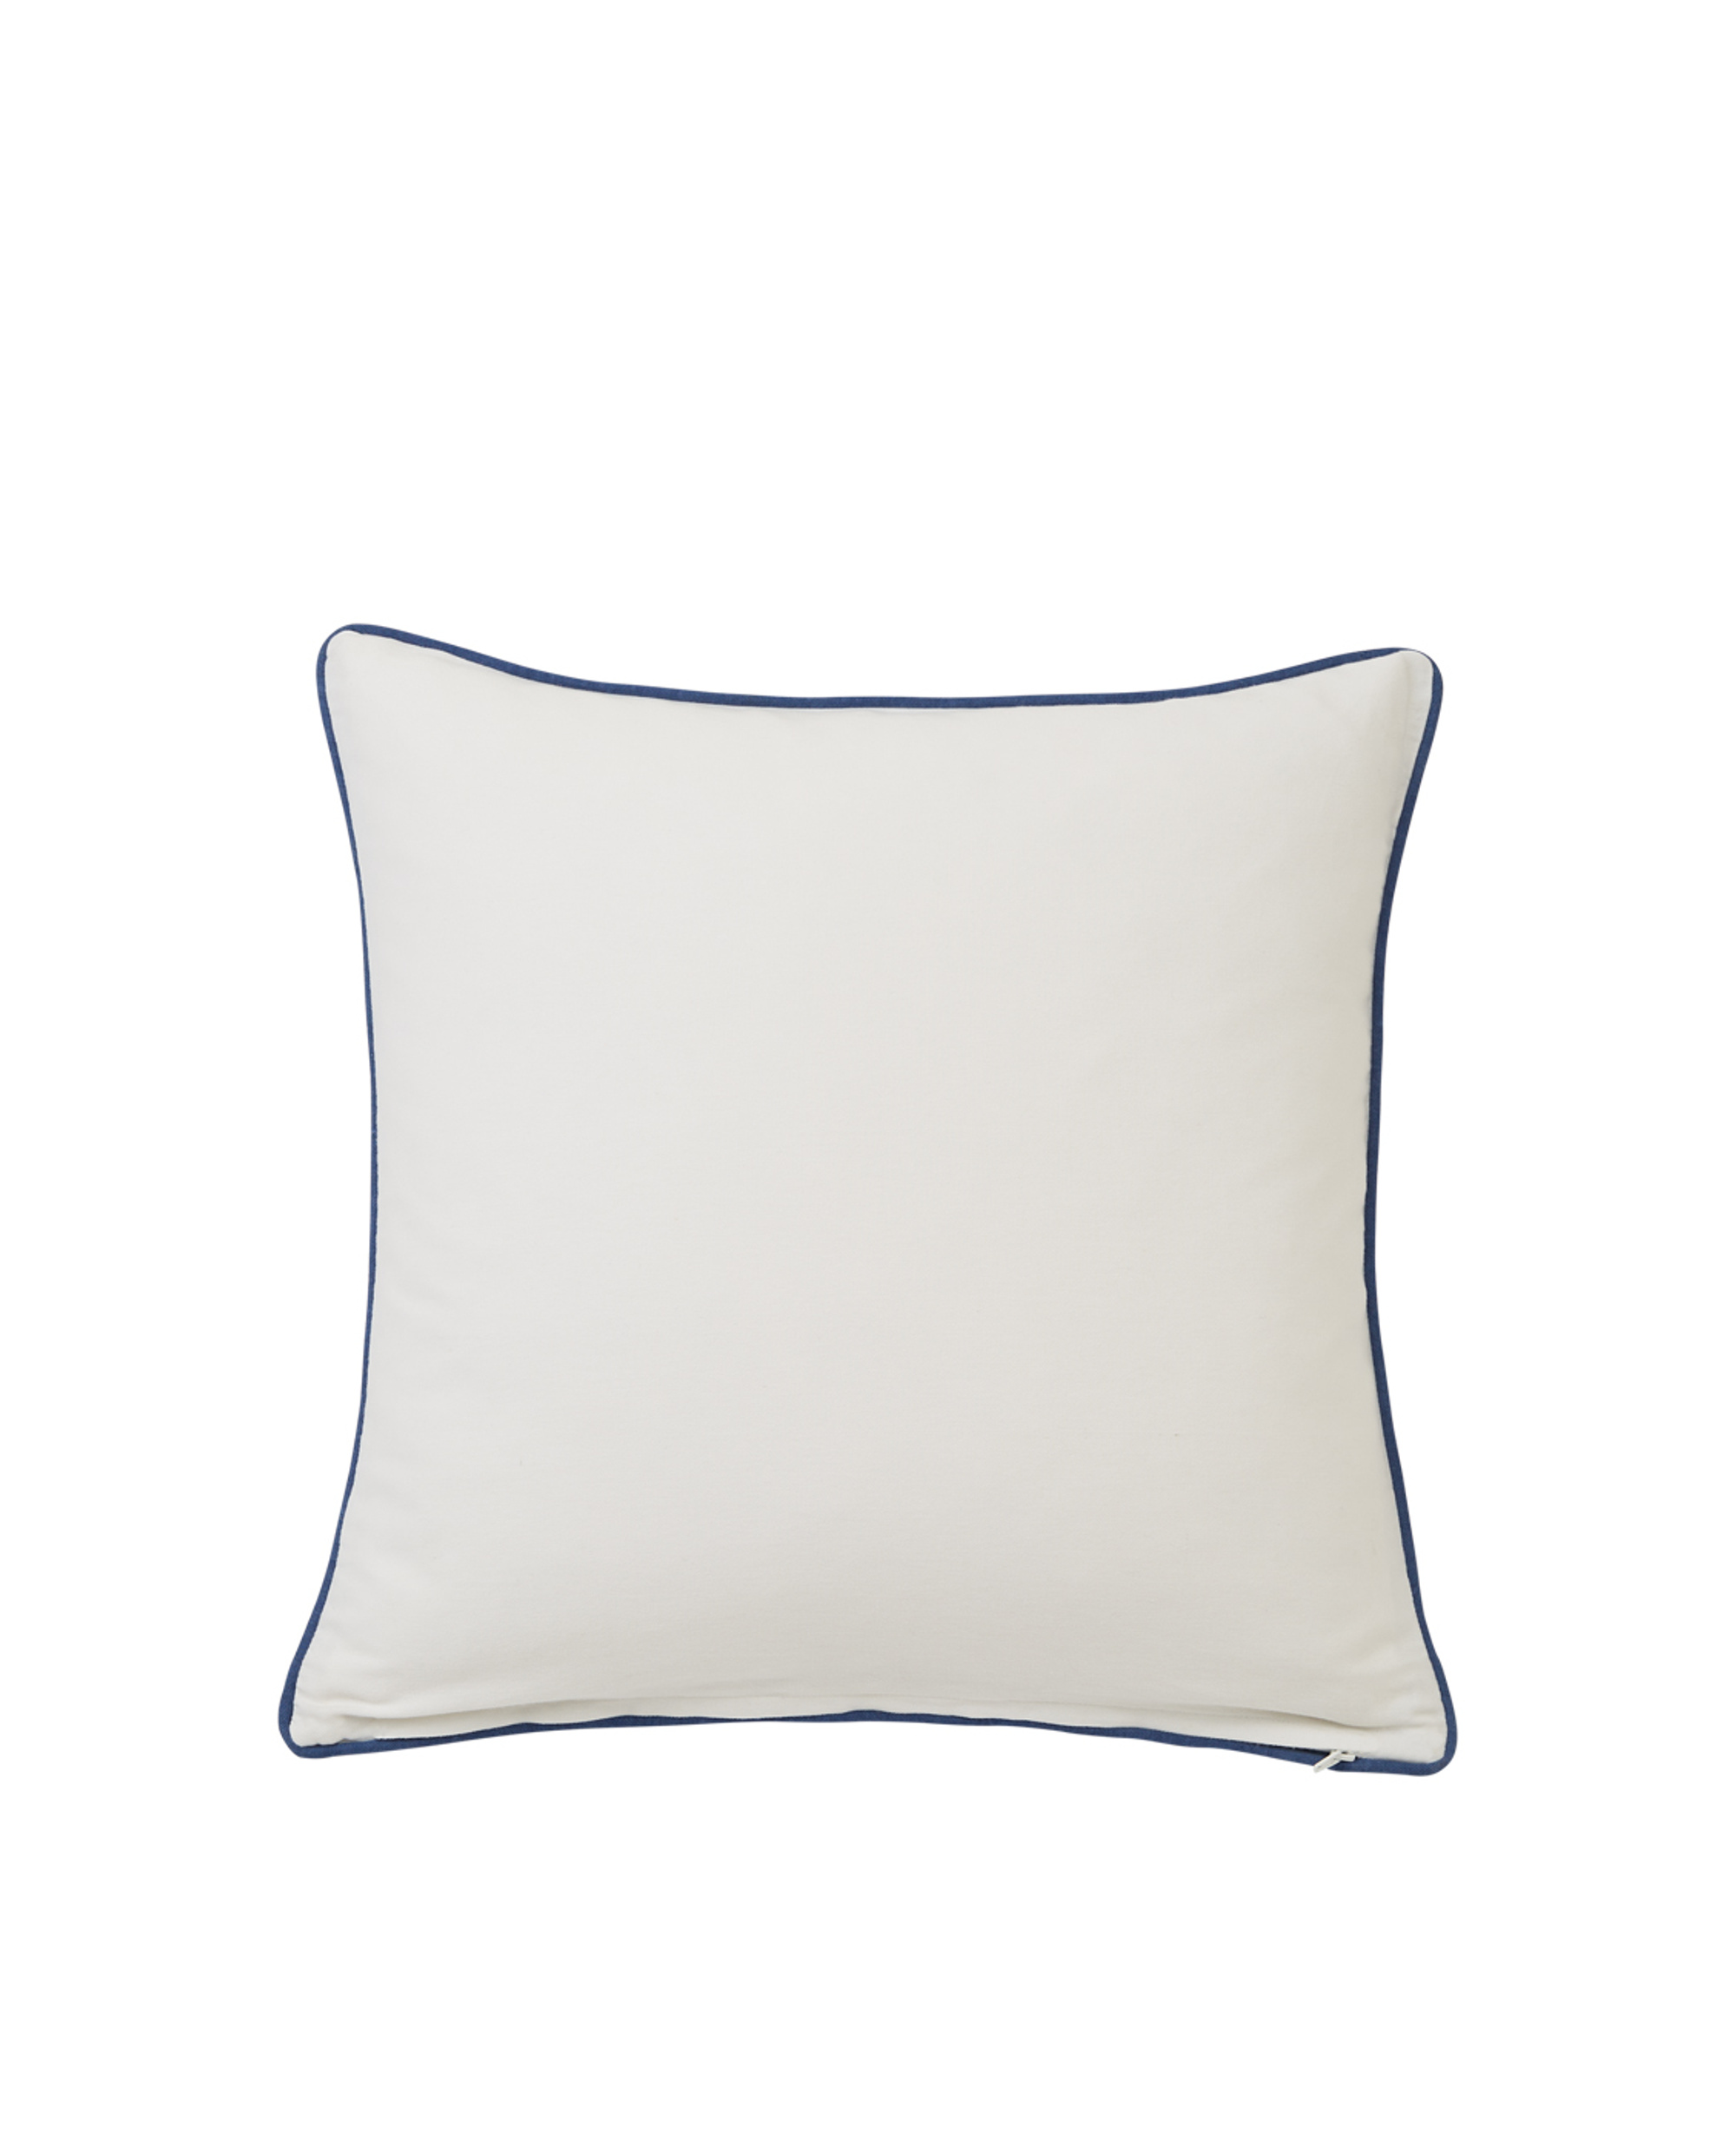 Gone To The Beach Cotton Pillow Cover, White